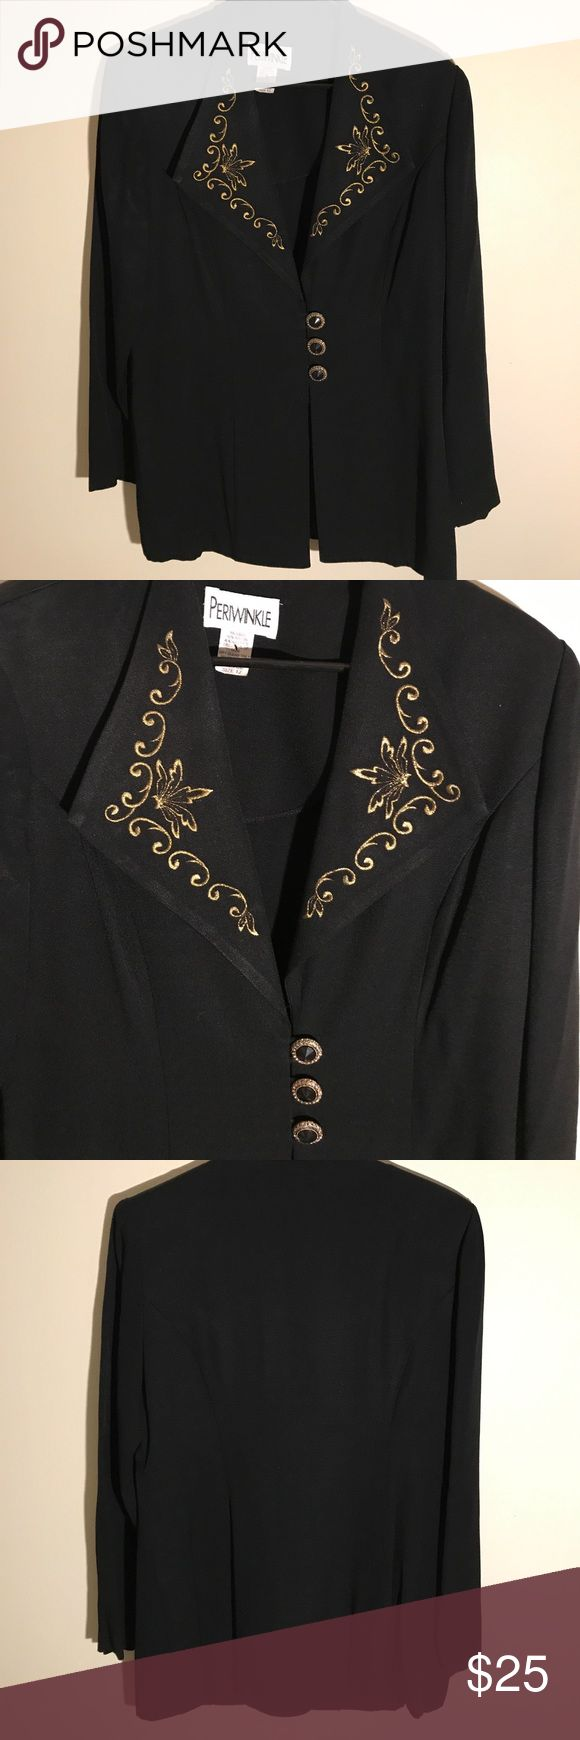 Beautiful Designer Blazer EXCELLENT CONDITION NO FLAWS! Details, measurements and modeling photos coming Monday . If you're interested and need to know, please message me. YOU CAN CHOOSE TO PURCHASE ONLY 1 ITEM, BUT YOU CAN ONLY PURCHASE UP TO 3 ITEMS PER ORDER. OR YOUR ORDER WILL BE CANCELLED. Periwinkle Jackets & Coats Blazers